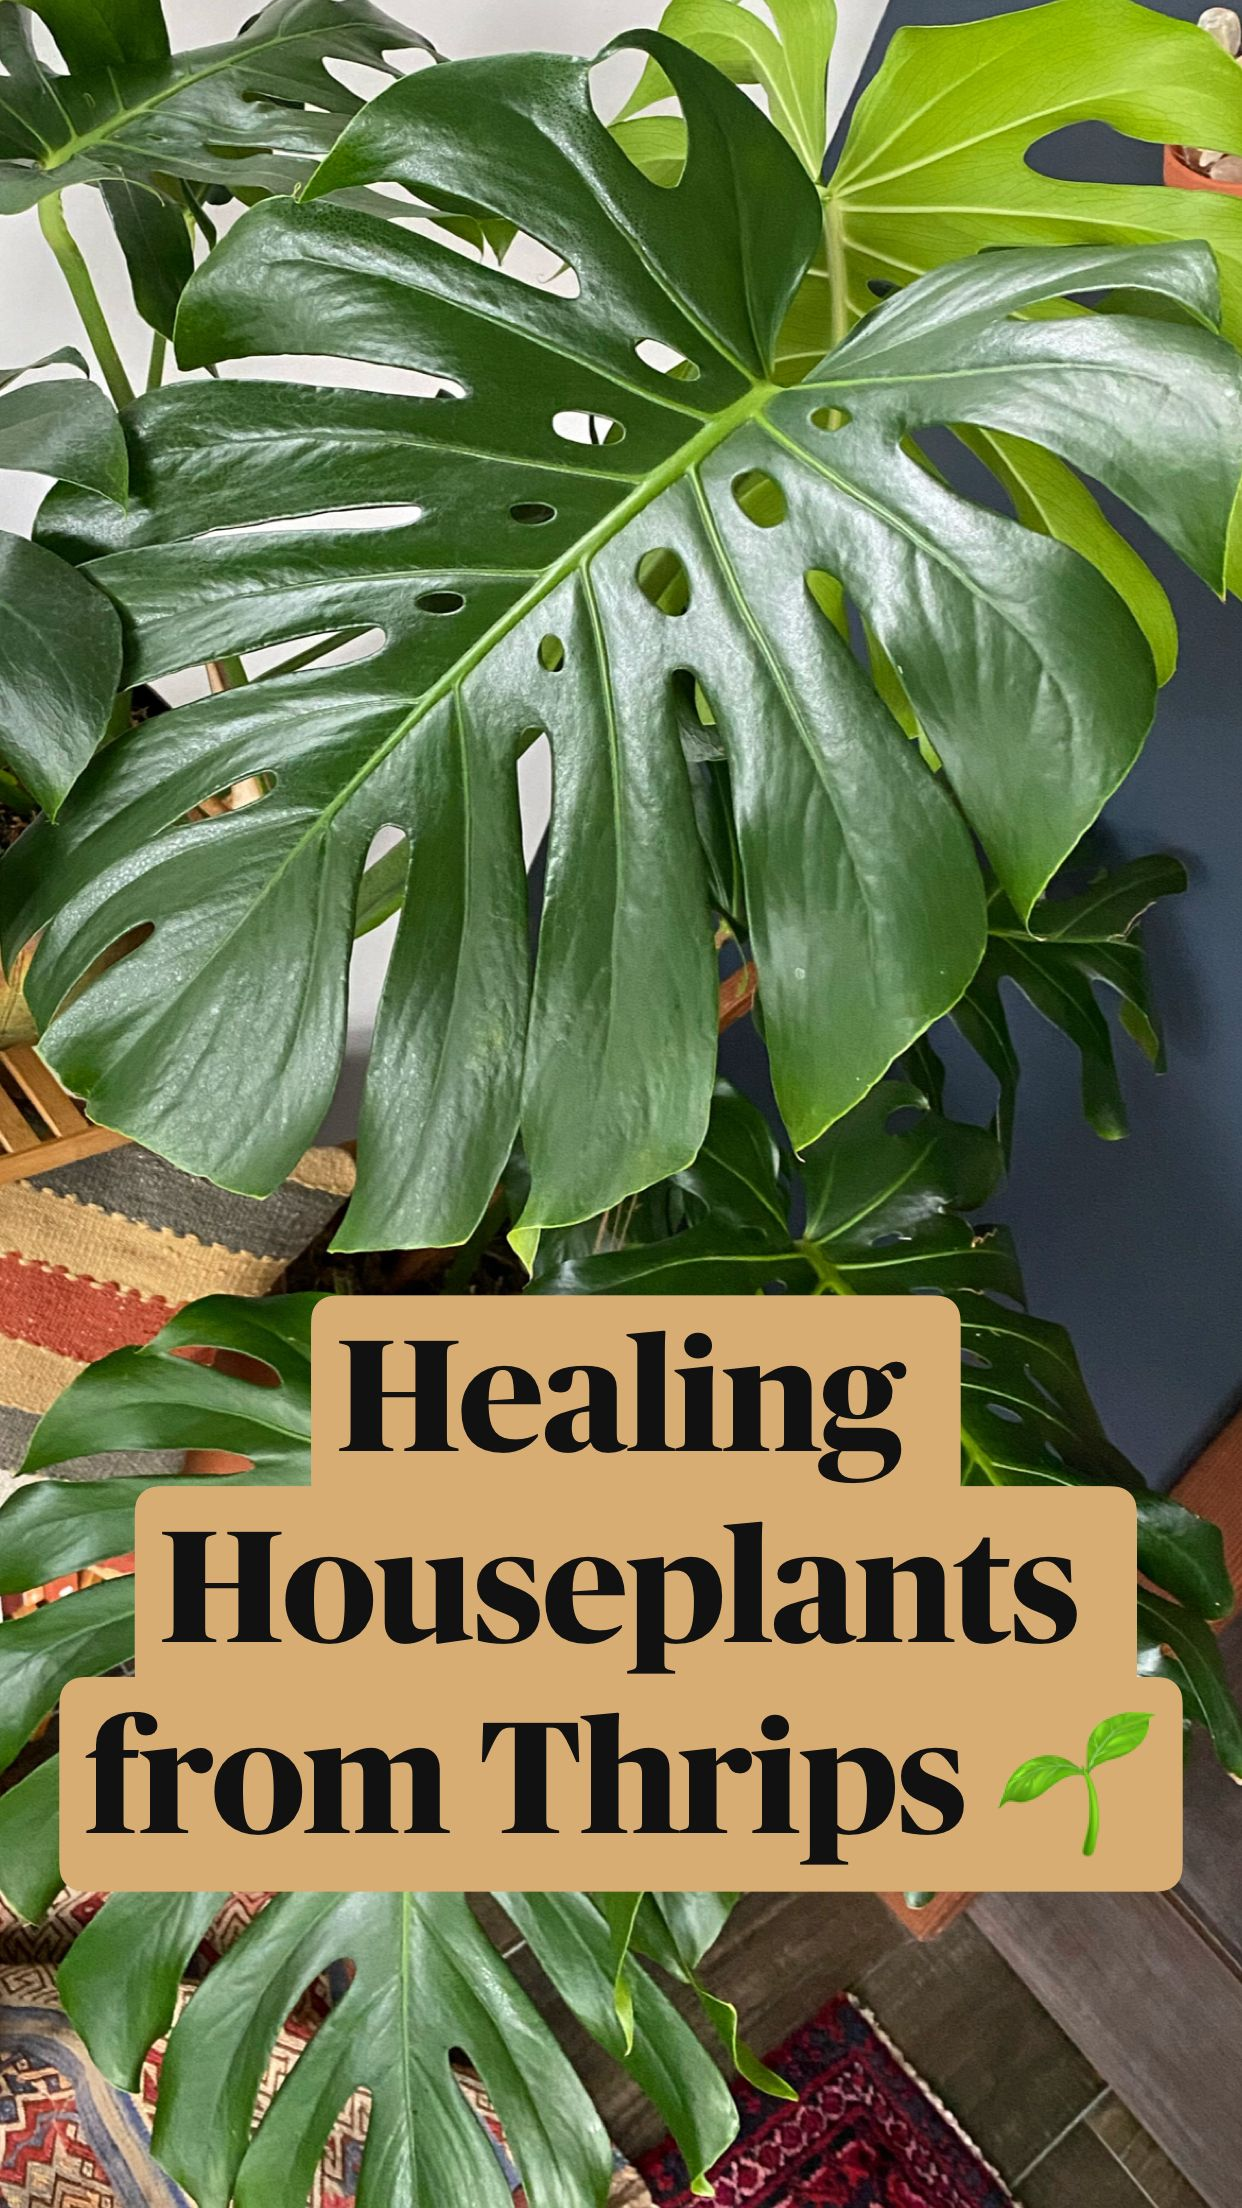 Healing Houseplants From Thrips An Immersive Guide By Sacred Elements